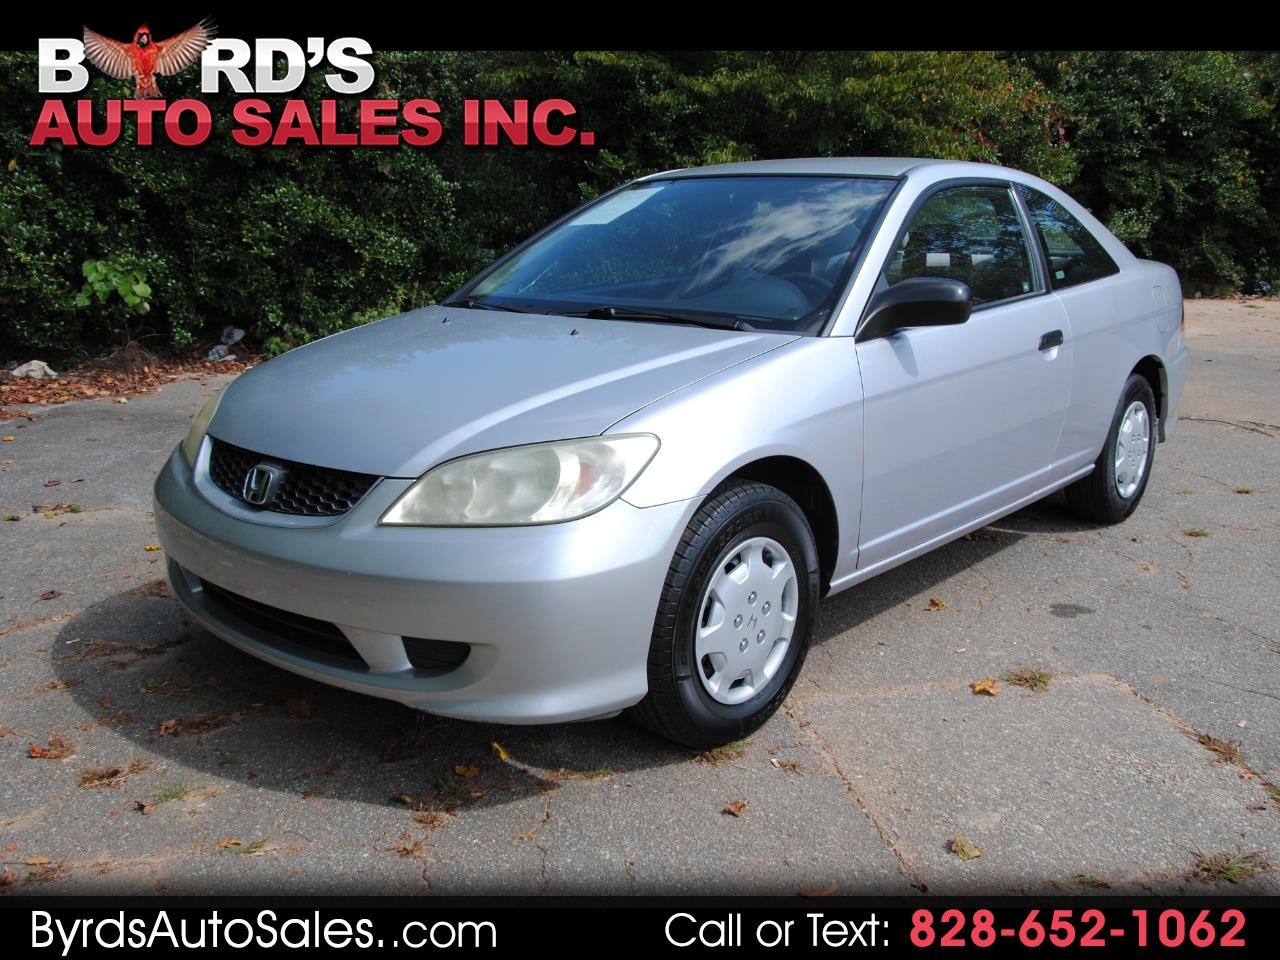 Honda Civic 2dr Cpe VP Auto 2004